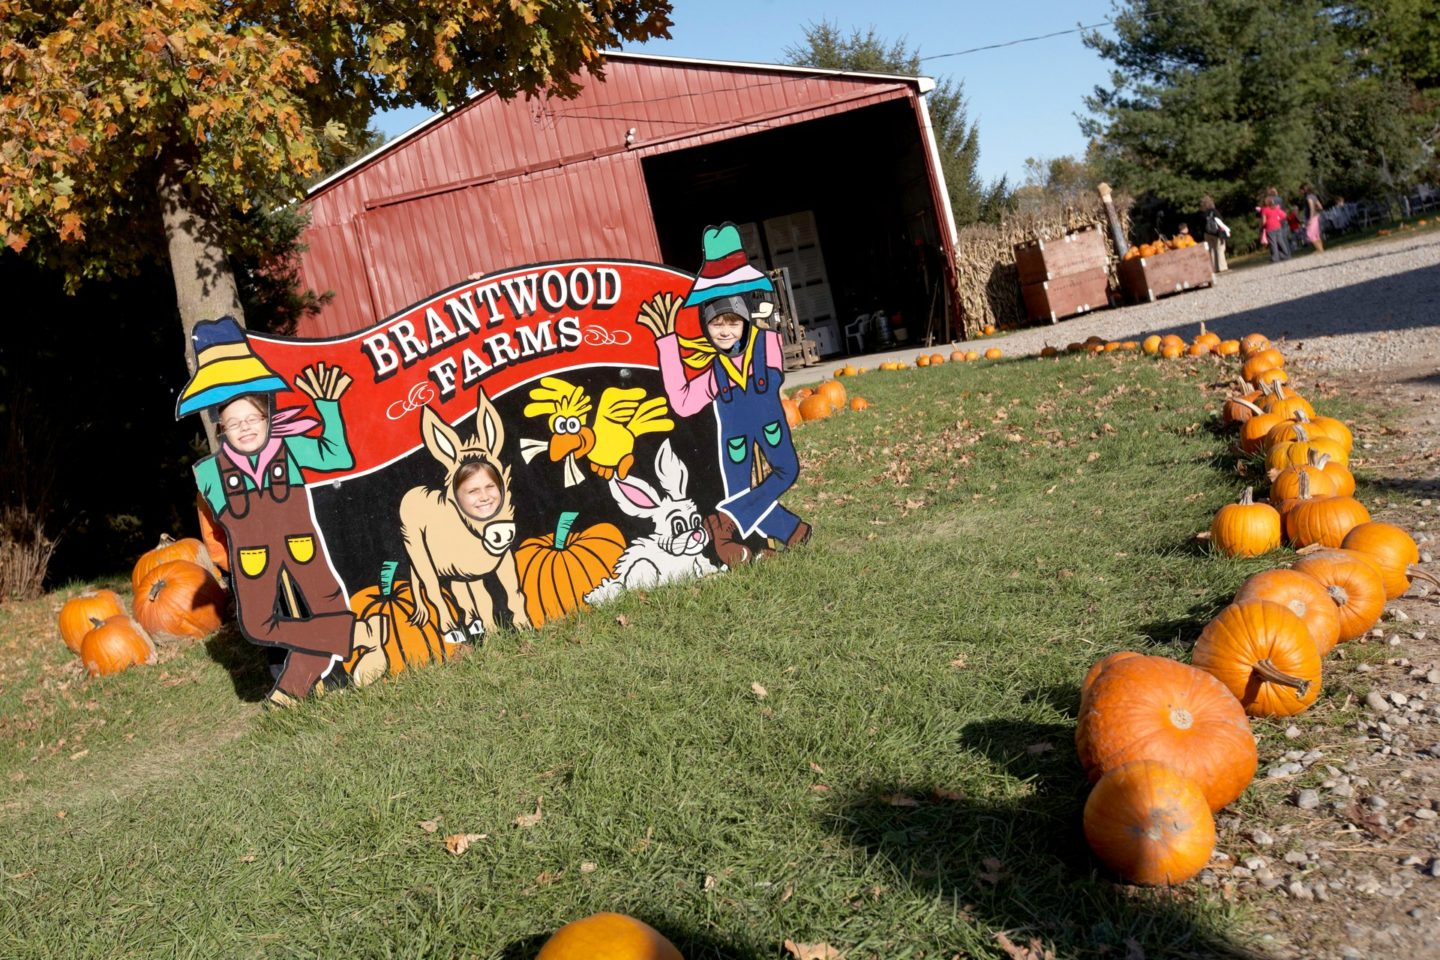 Fall Festival at Brantwood Farms 2021